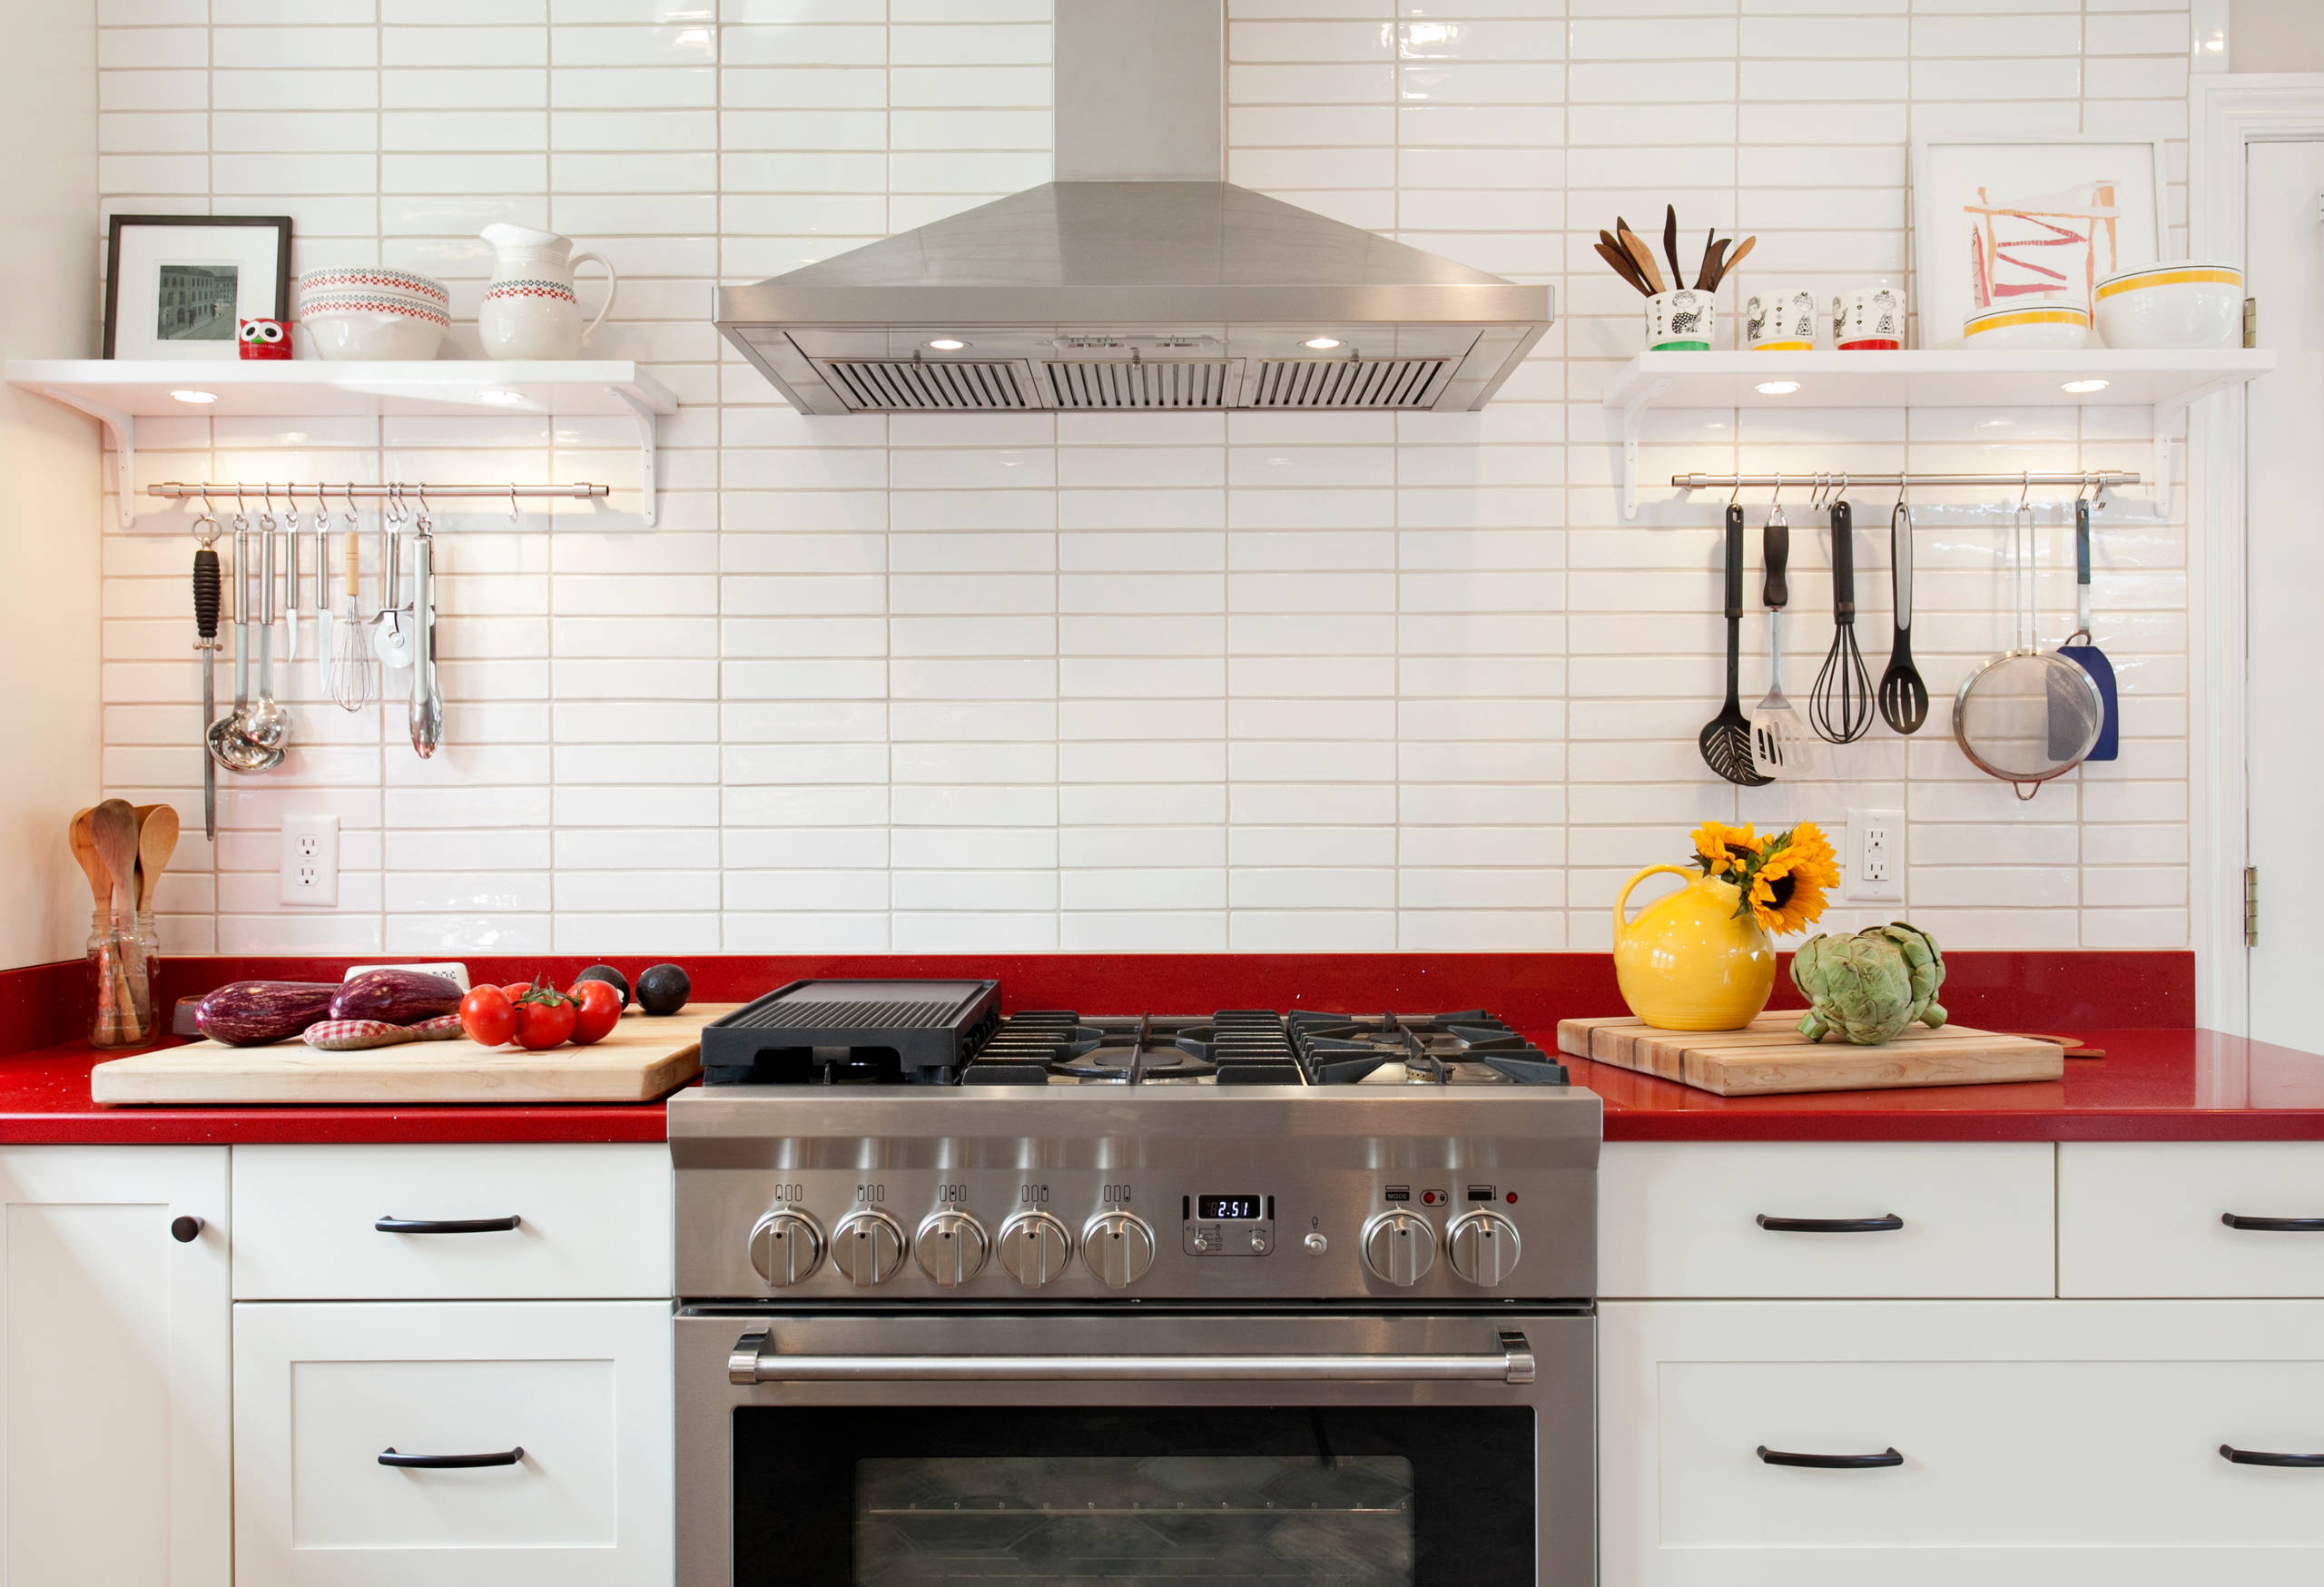 75 Beautiful White Kitchen With Red Countertops Pictures Ideas March 2021 Houzz